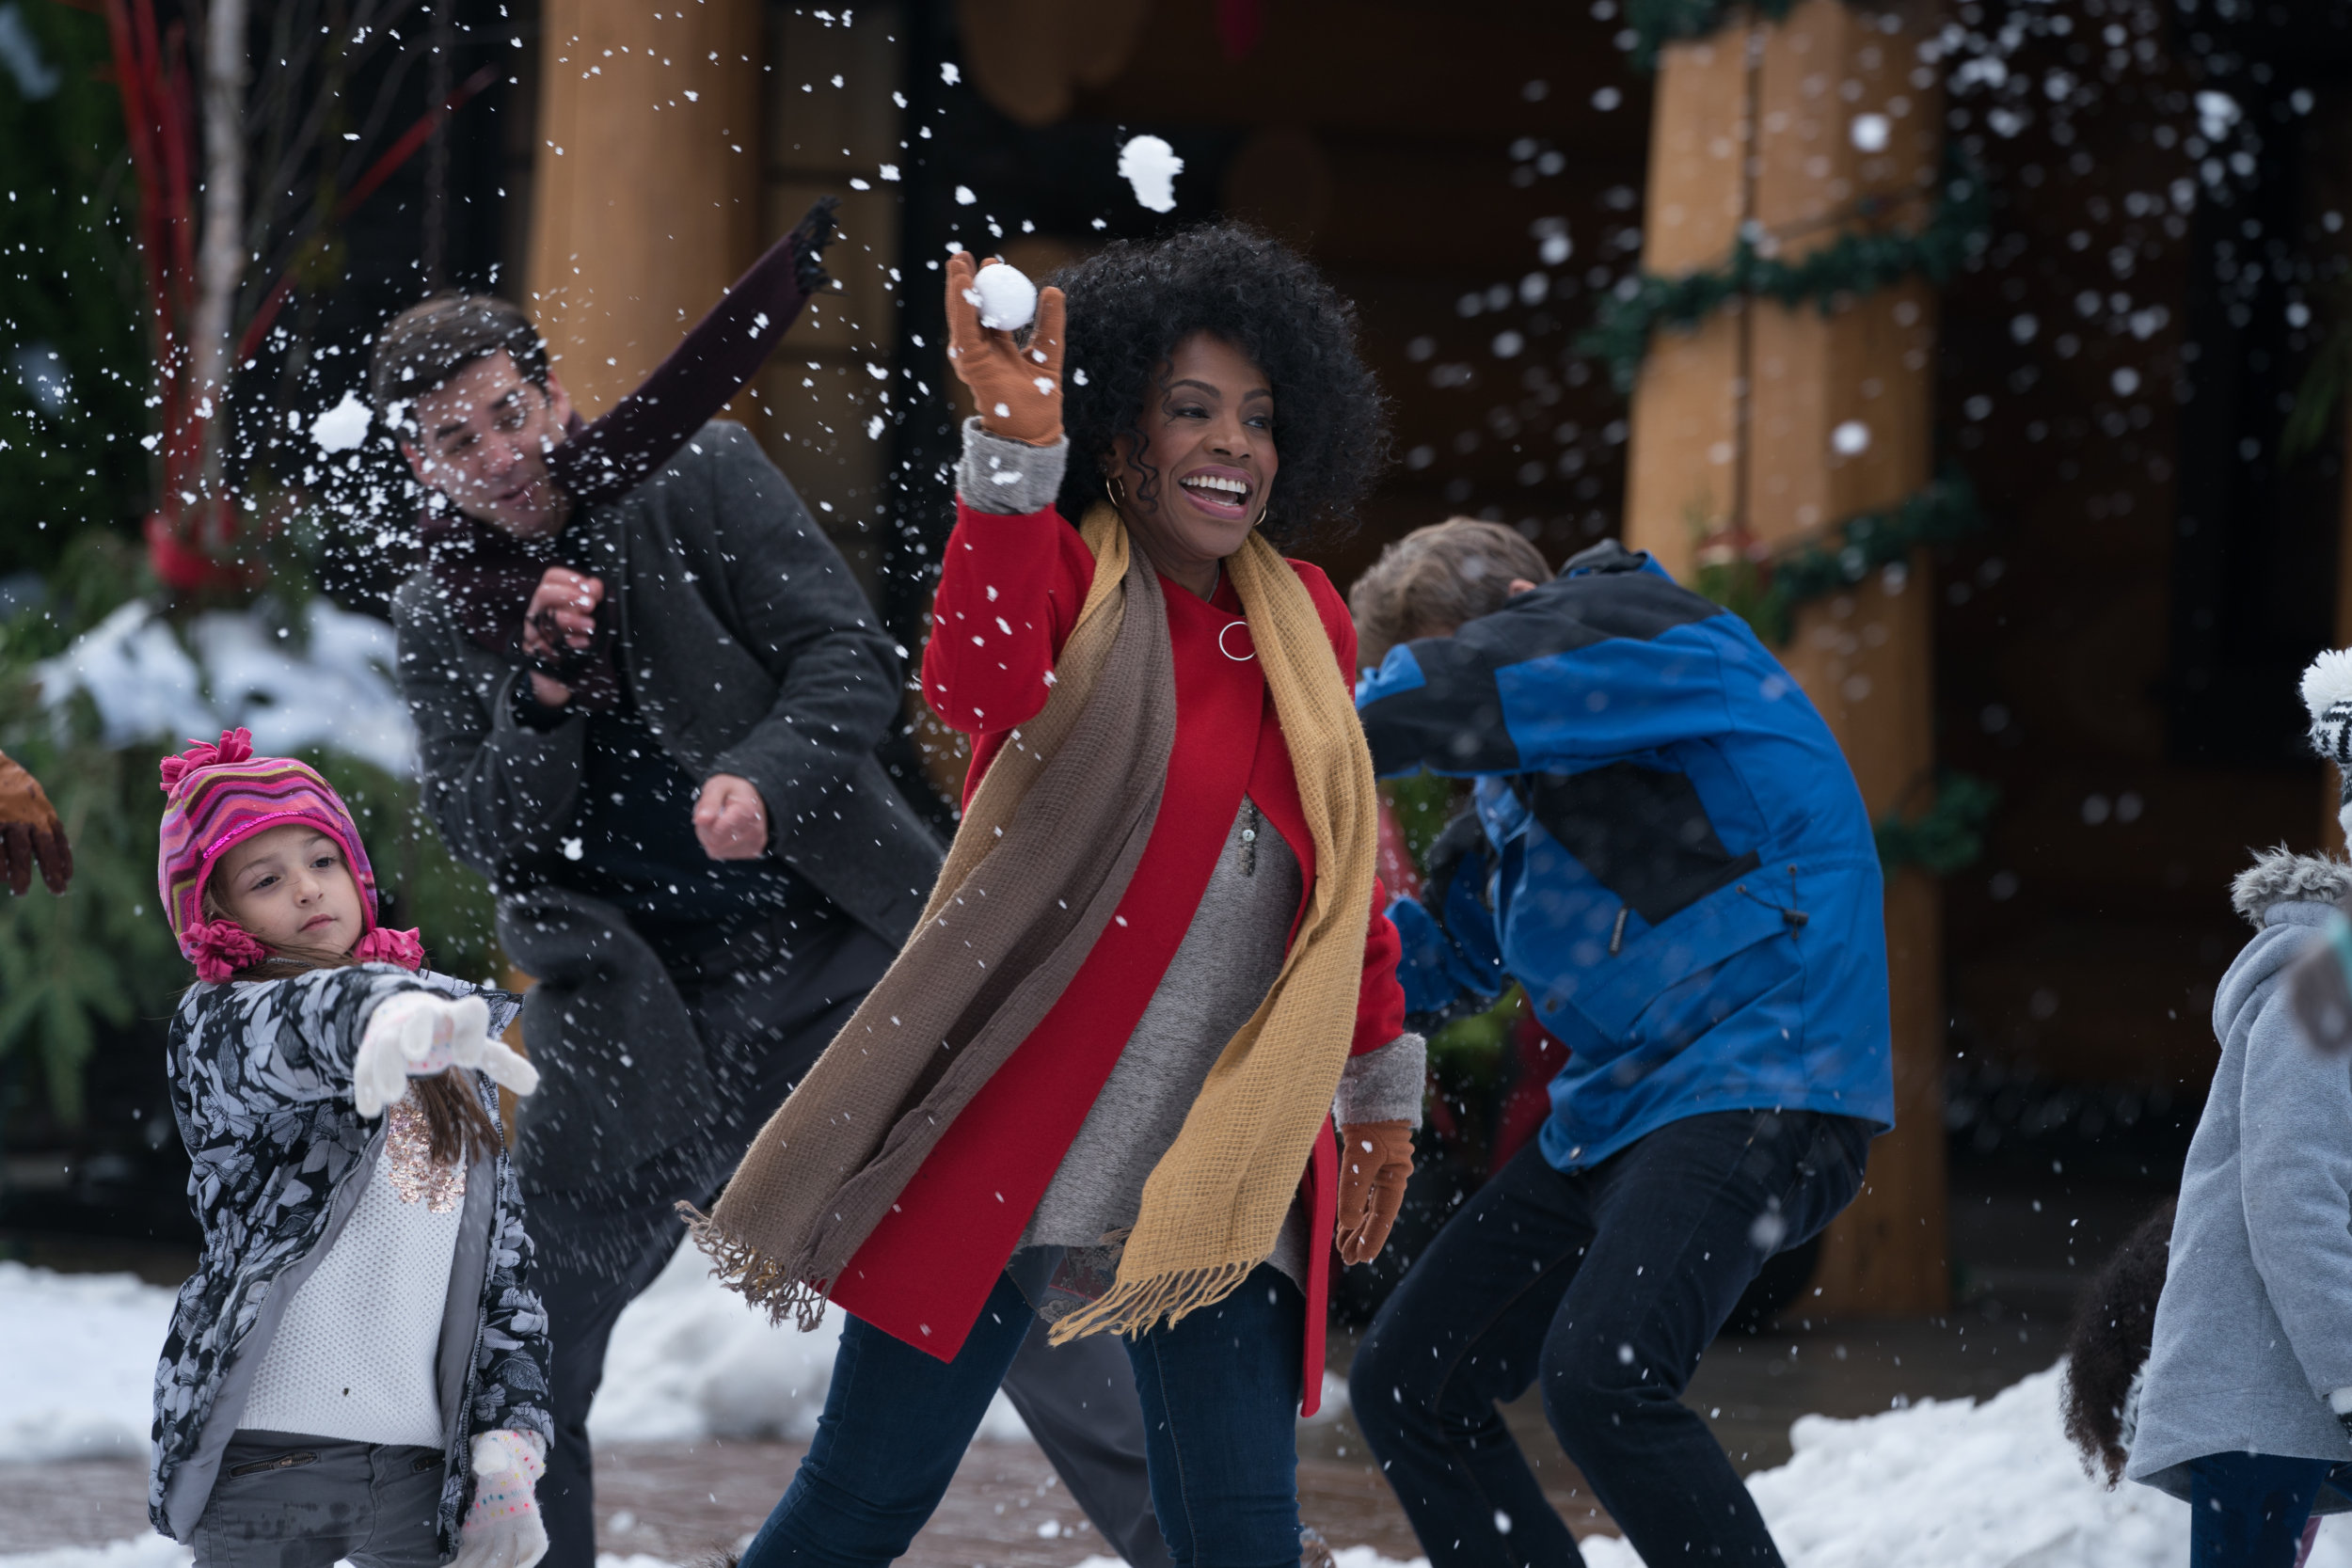 Will It Snow For Christmas Cast.Cast Interviews About Nadine Christmas At Holly Lodge